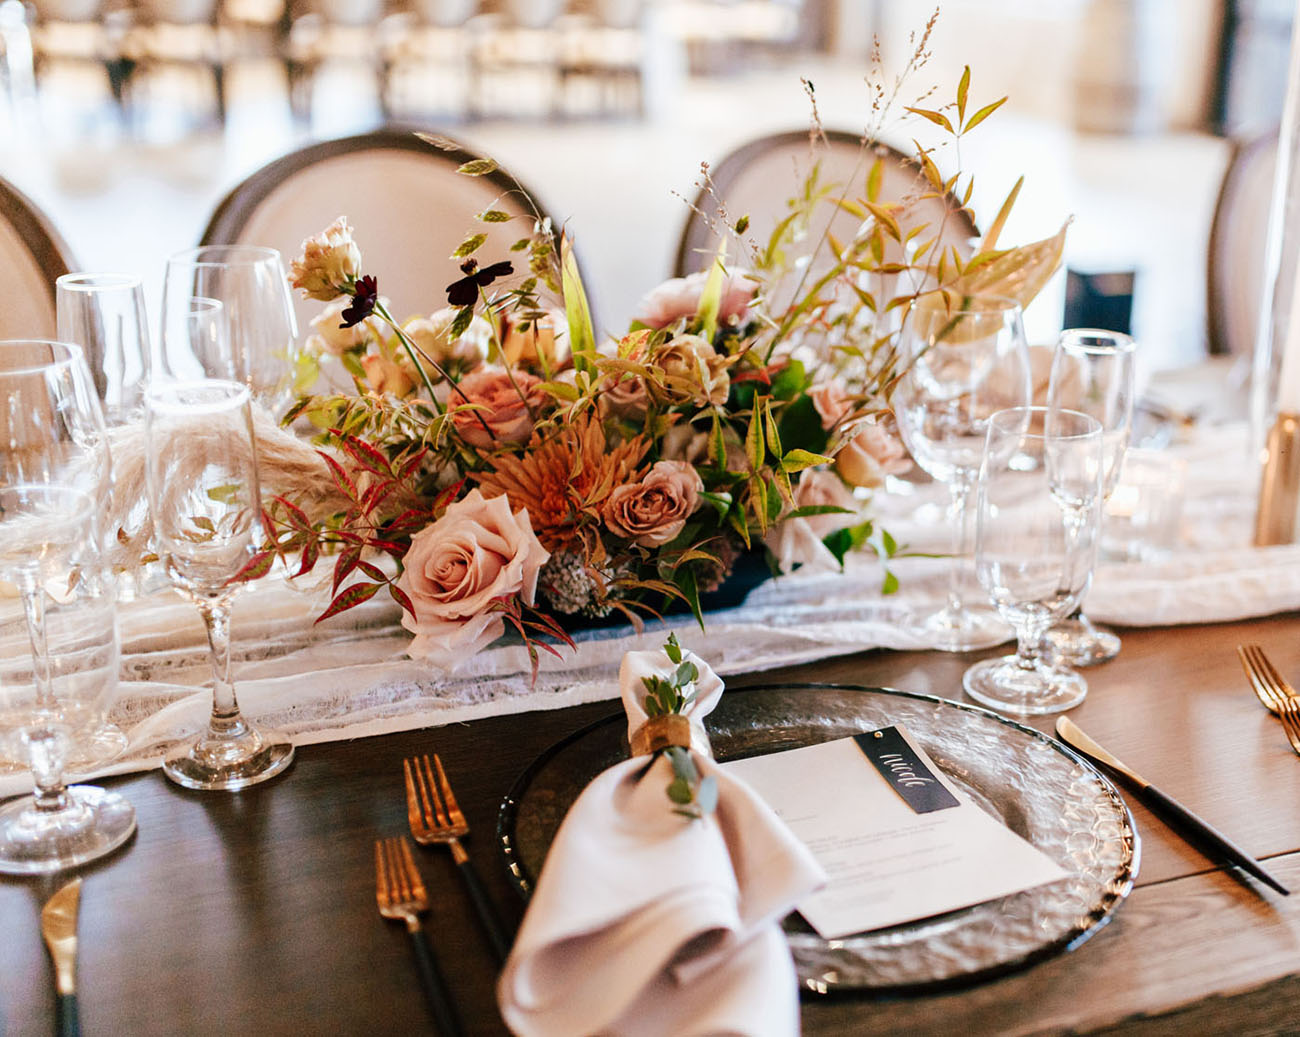 The wedding reception was done with lush and textural arrangements, a lace runner, glass chargers